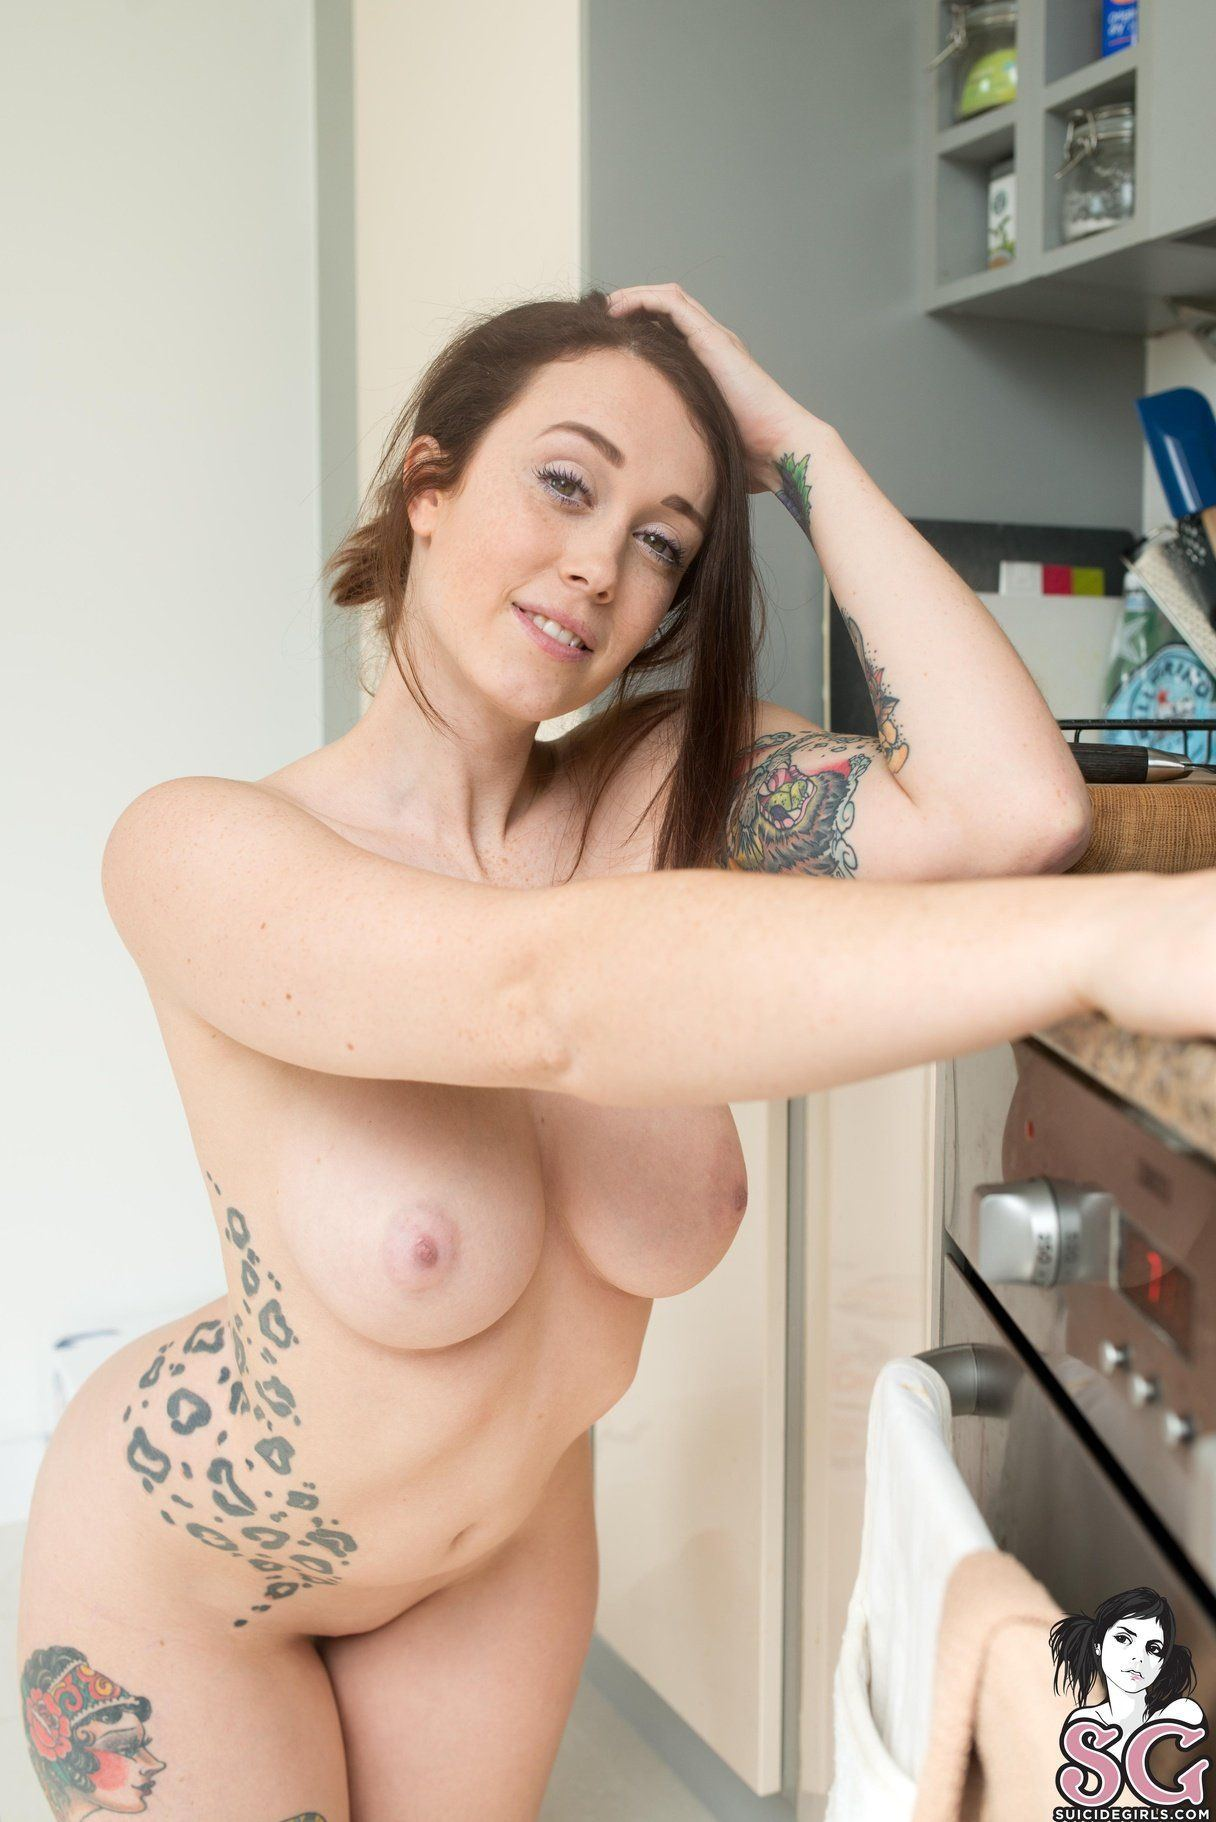 Nackt suicide girls hot The Six